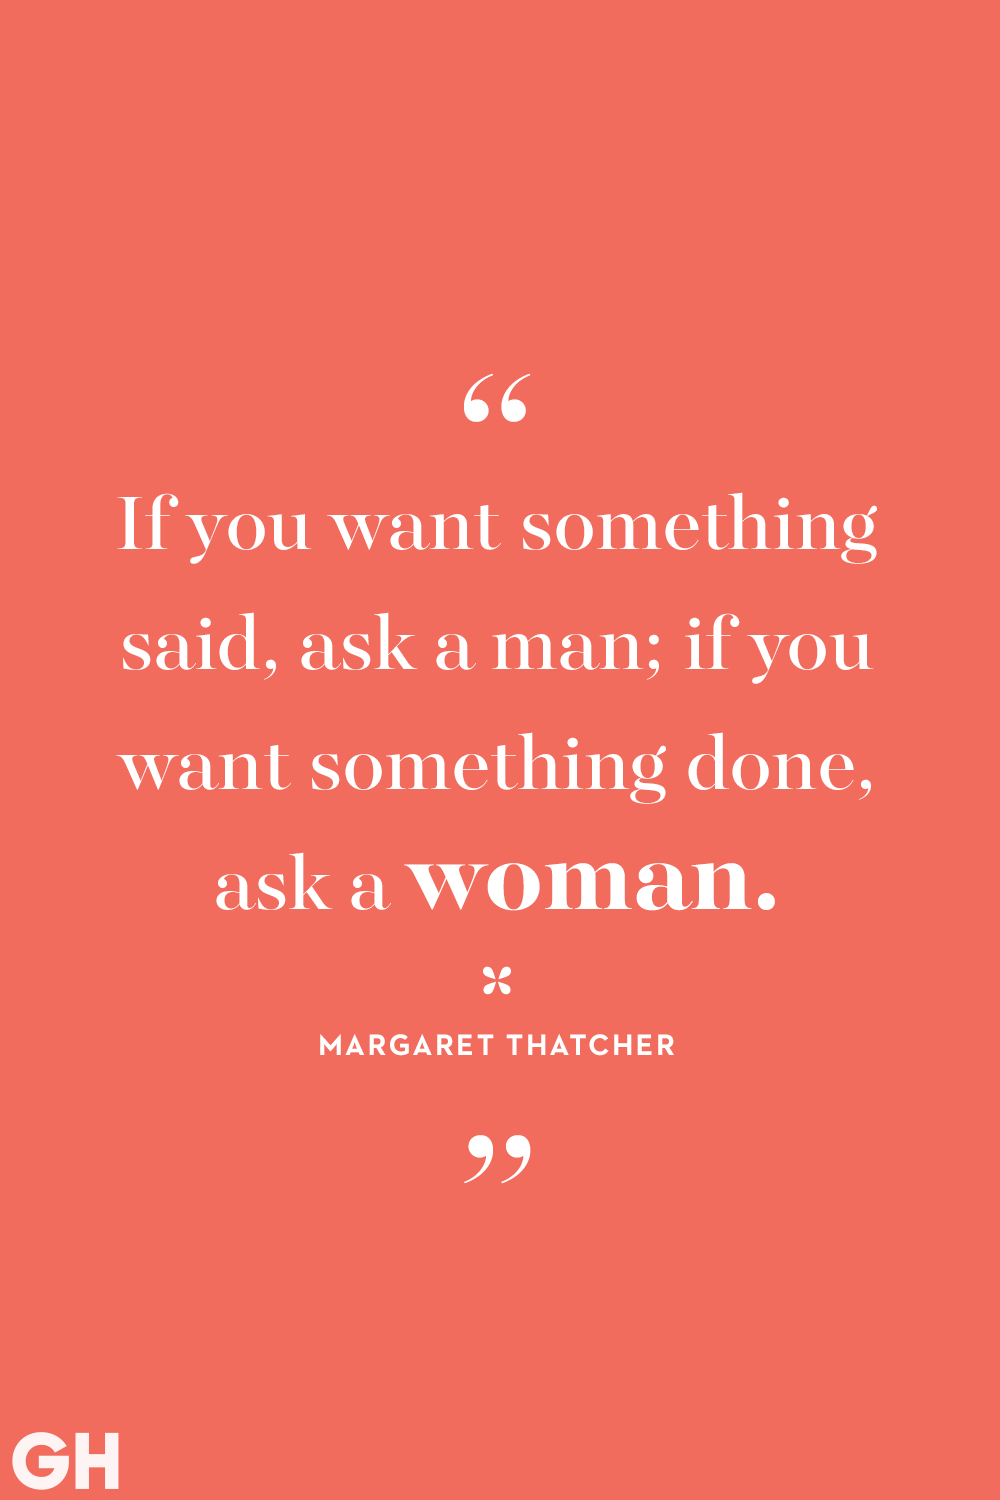 International Women's Day Quotes Margaret Thatcher